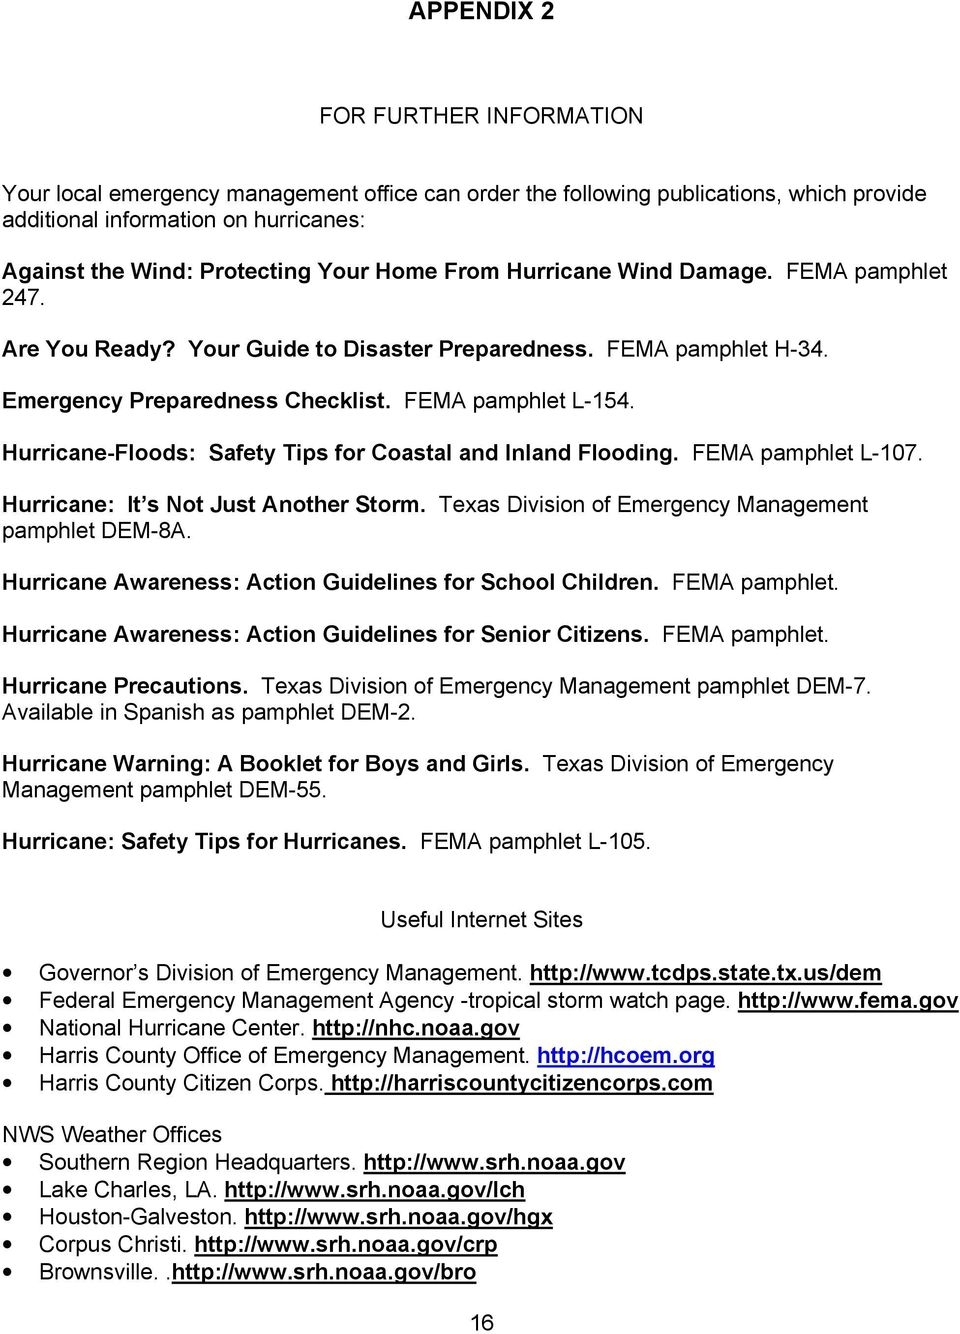 Hurricane-Floods: Safety Tips for Coastal and Inland Flooding. FEMA pamphlet L-107. Hurricane: It s Not Just Another Storm. Texas Division of Emergency Management pamphlet DEM-8A.